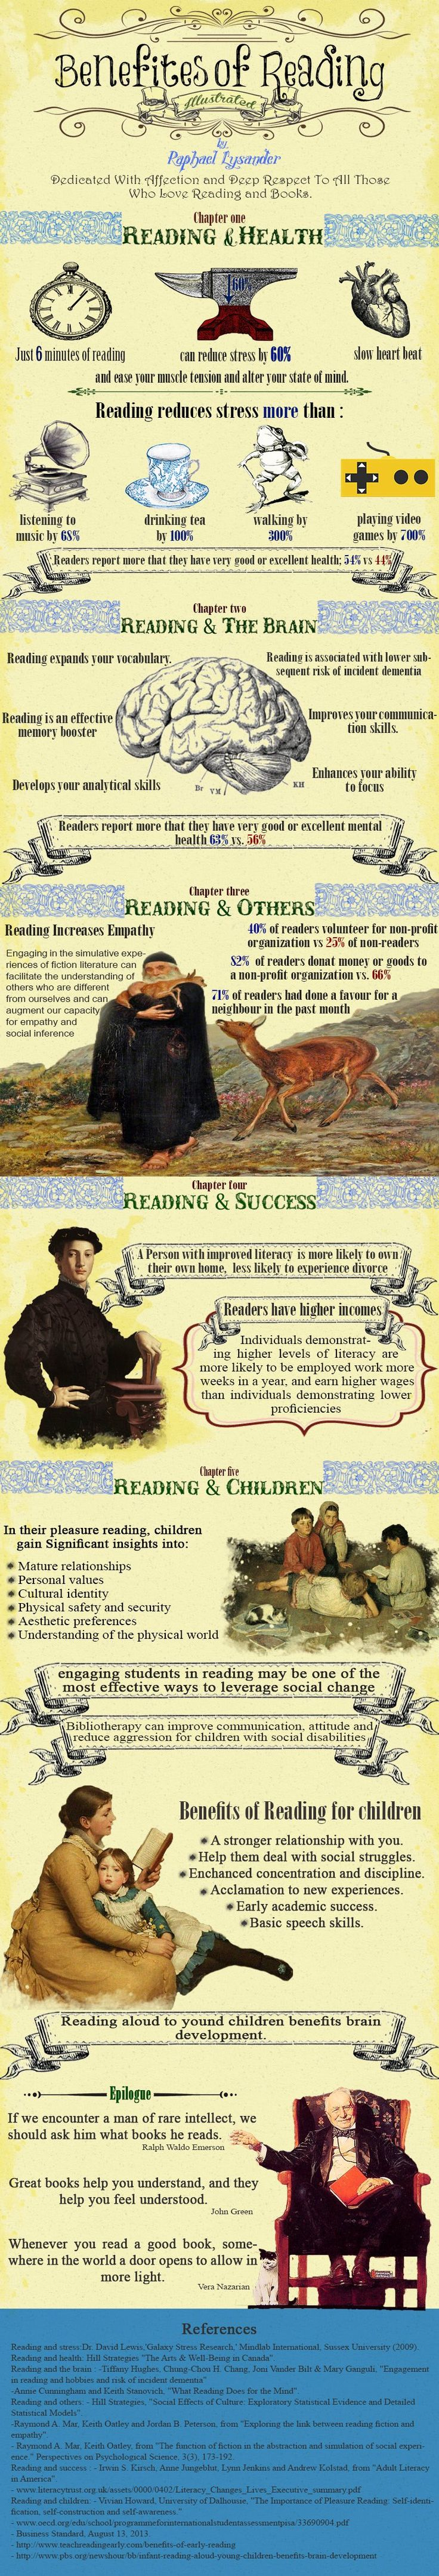 Raphael Lysander, a graphic designer and owner of Bluewolf Aleppo, has just released an infographic on the benefits of reading. We shared reading…